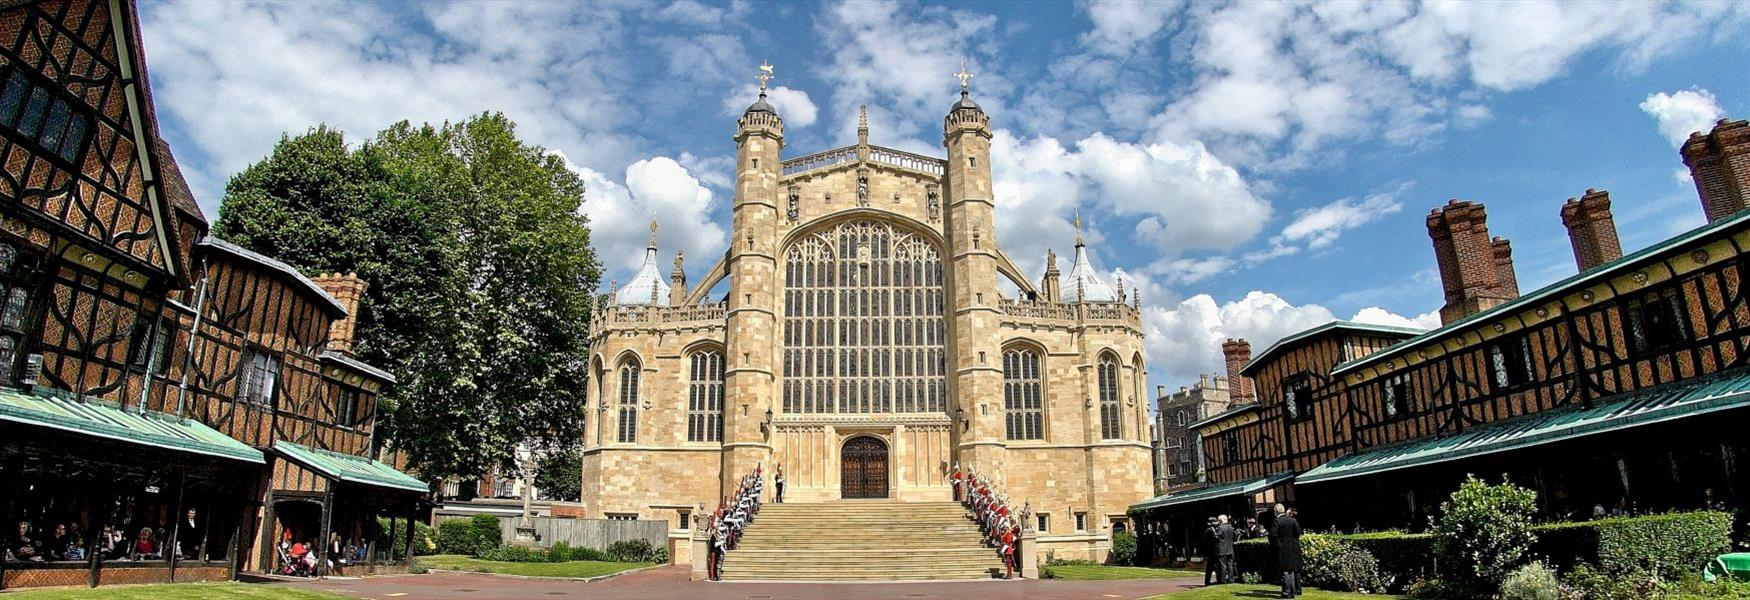 St George's Chapel